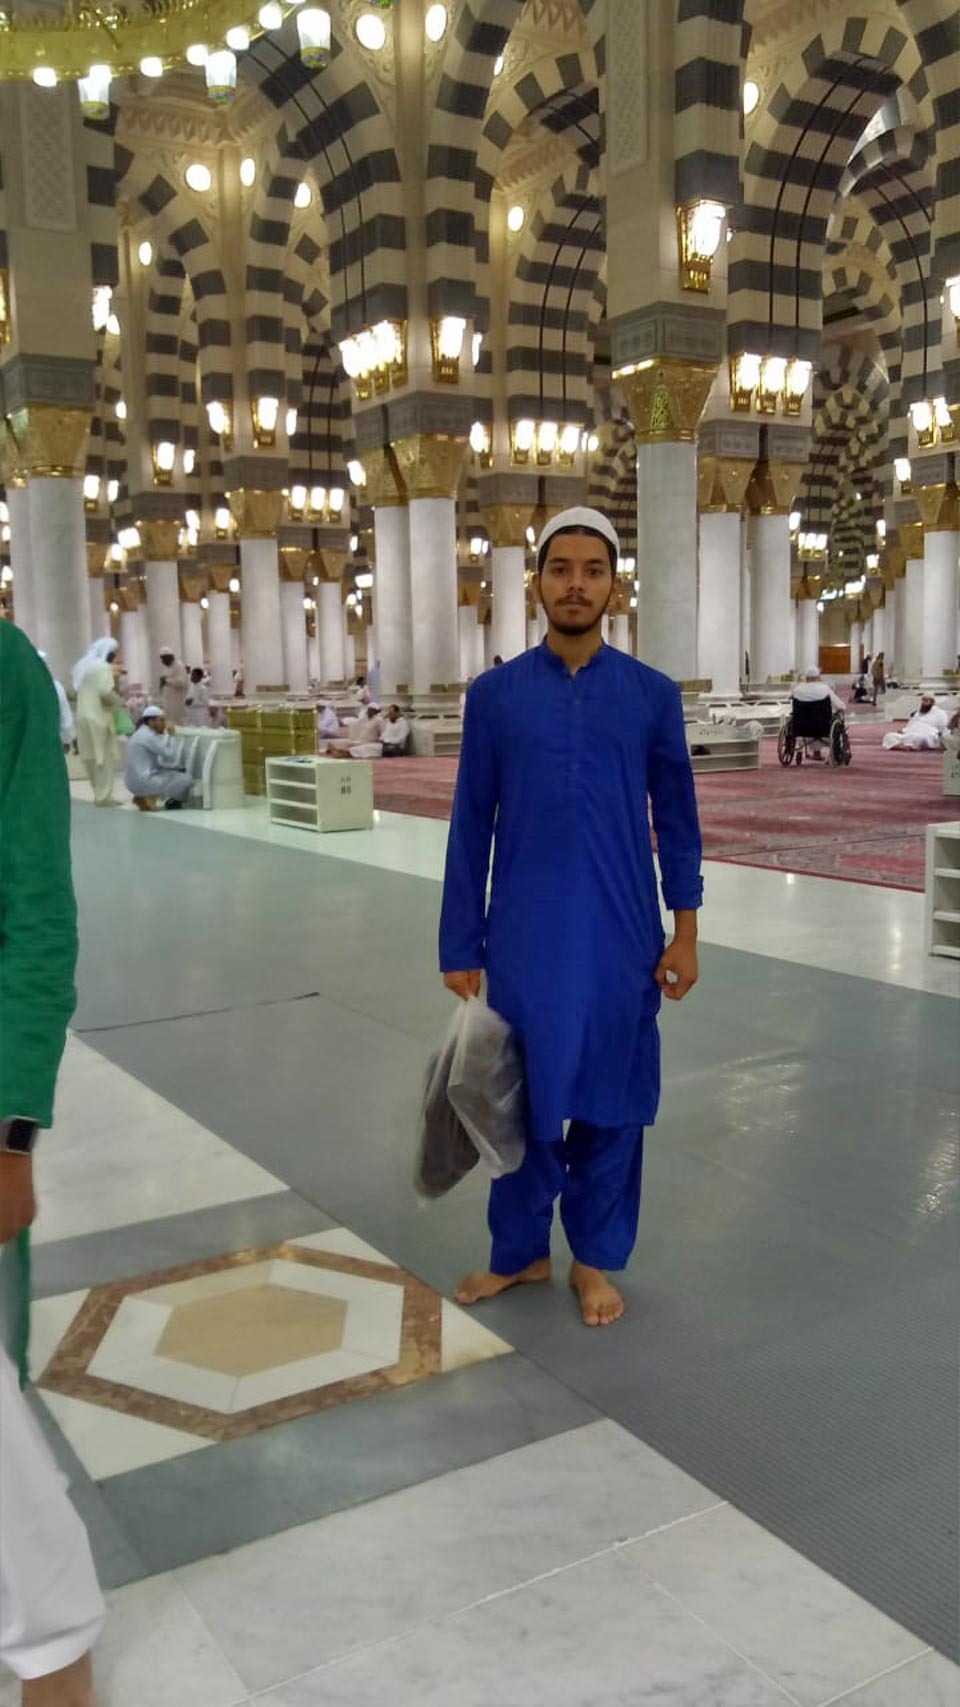 Obaid Ur Rehman inside the Masjid-e-Nabwi